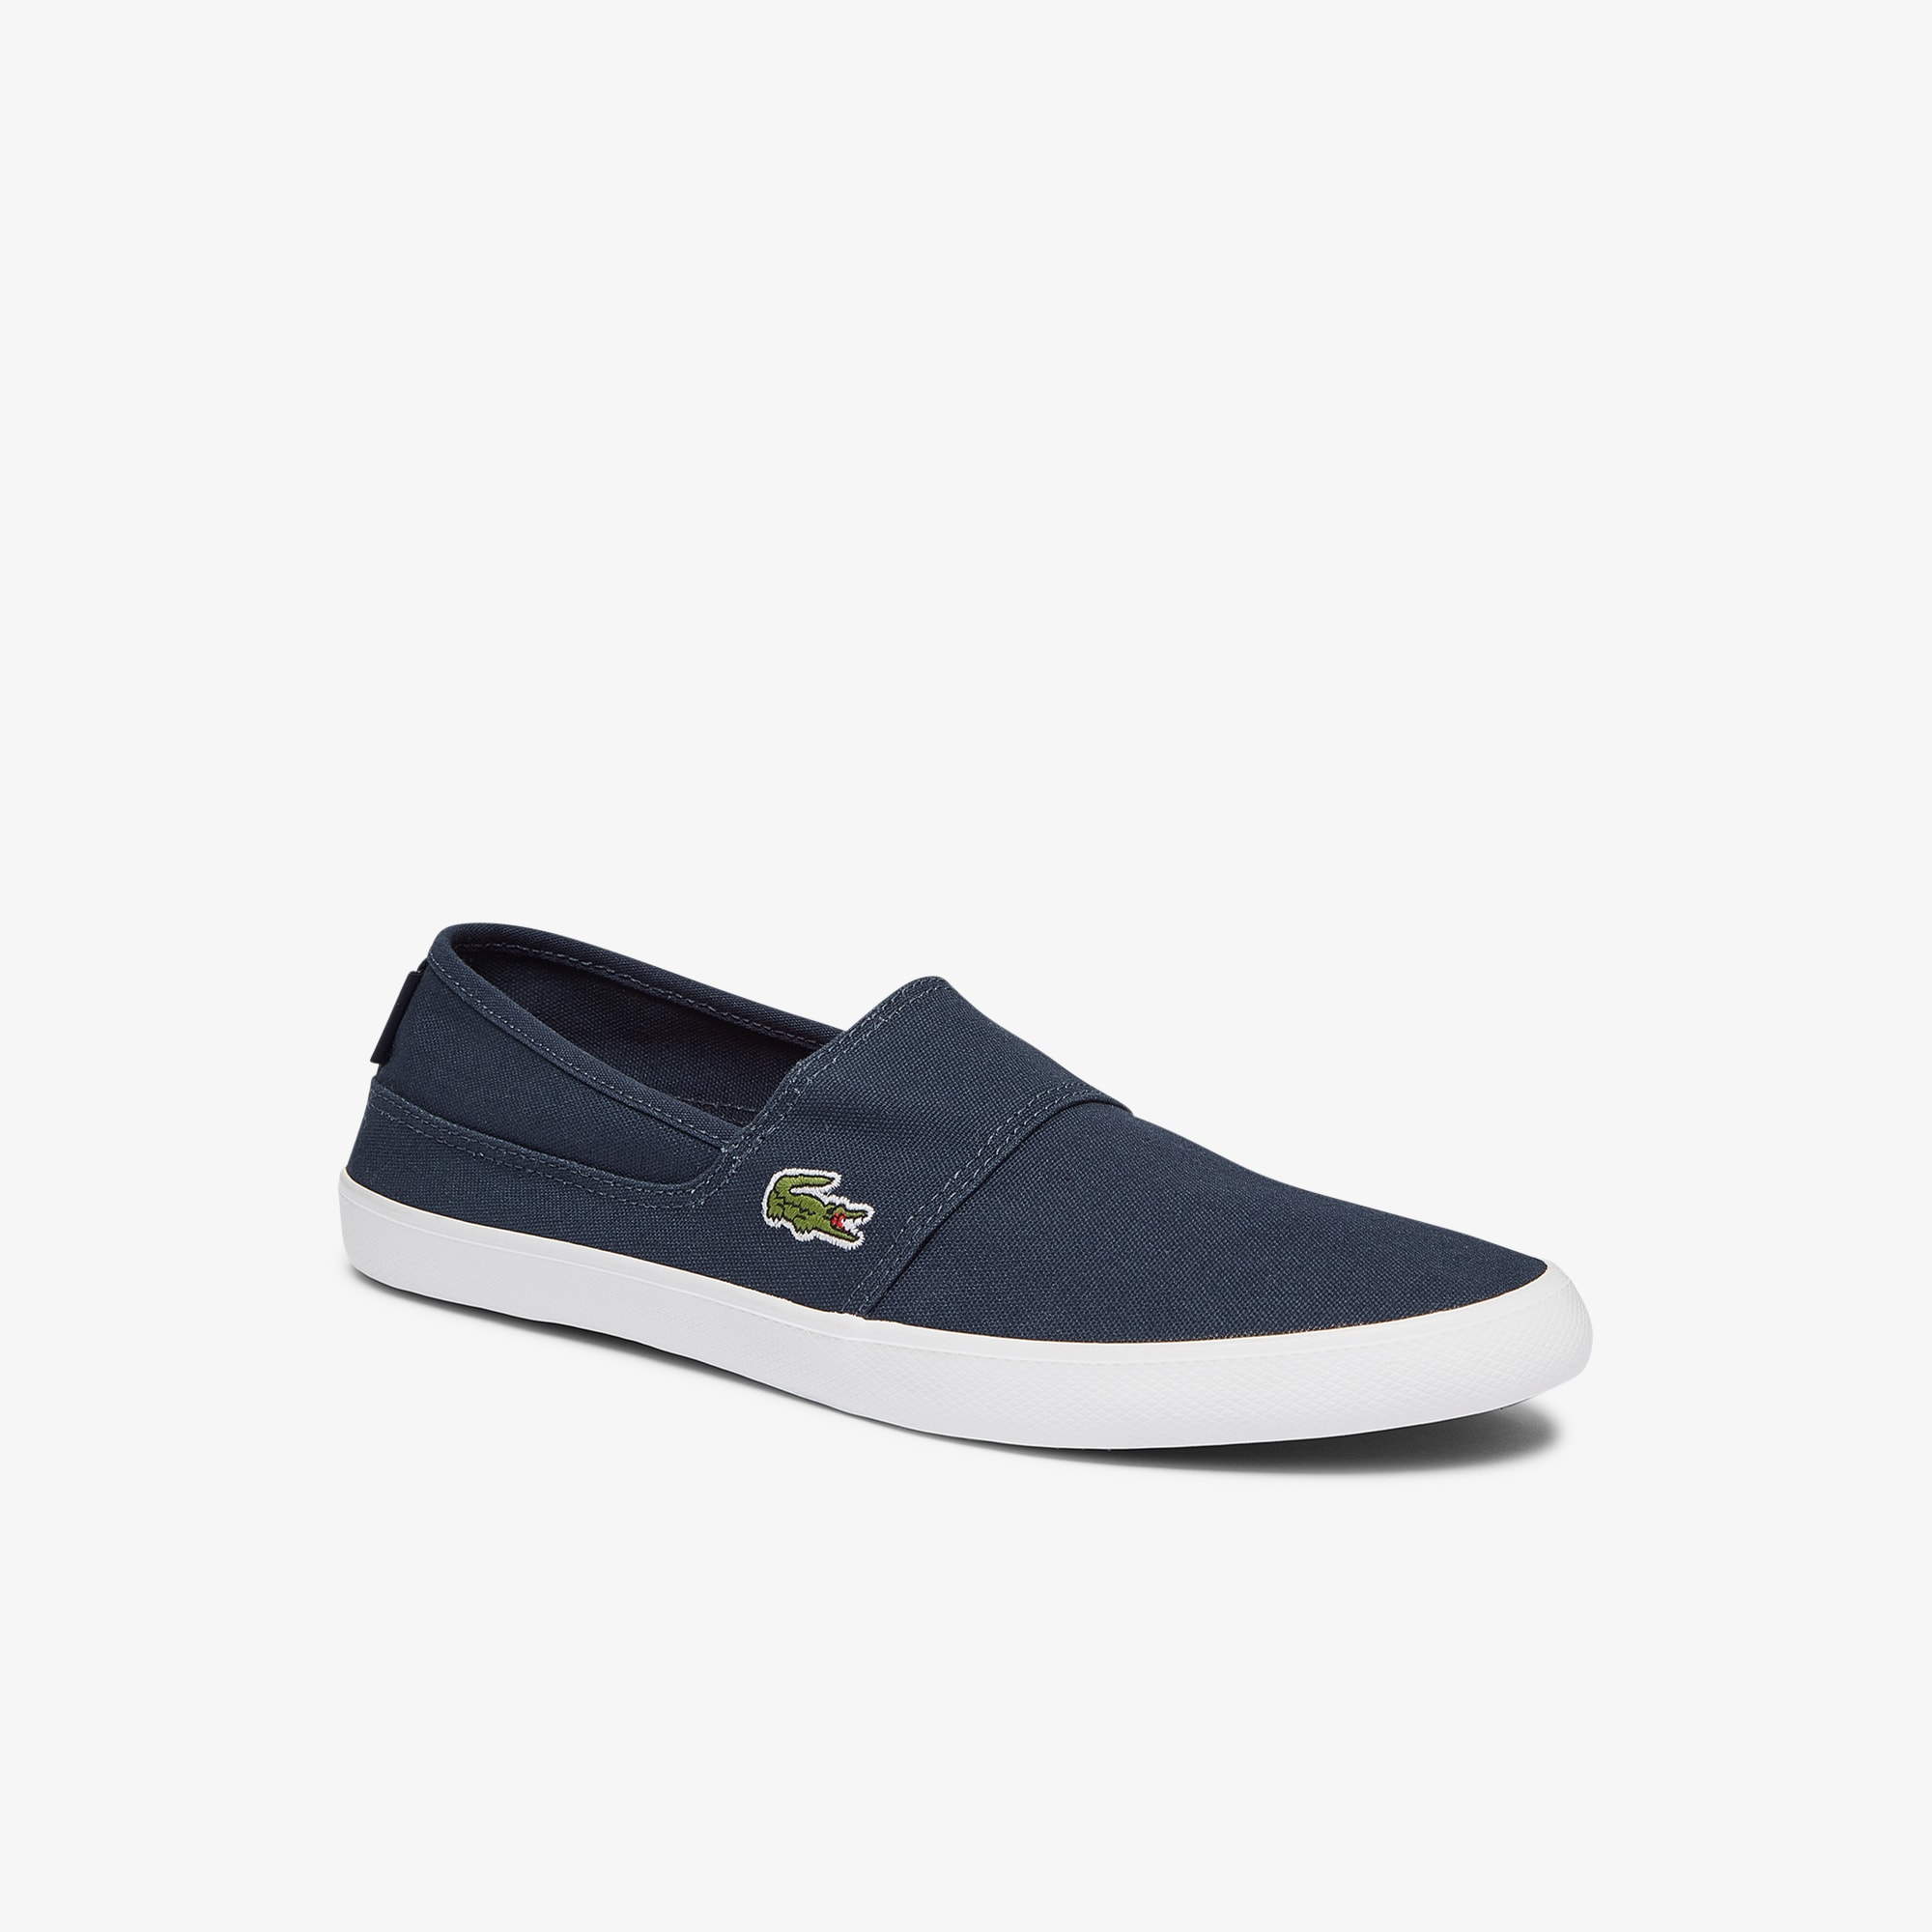 cdc3c53c8c383 Lacoste shoes for men  Sneakers